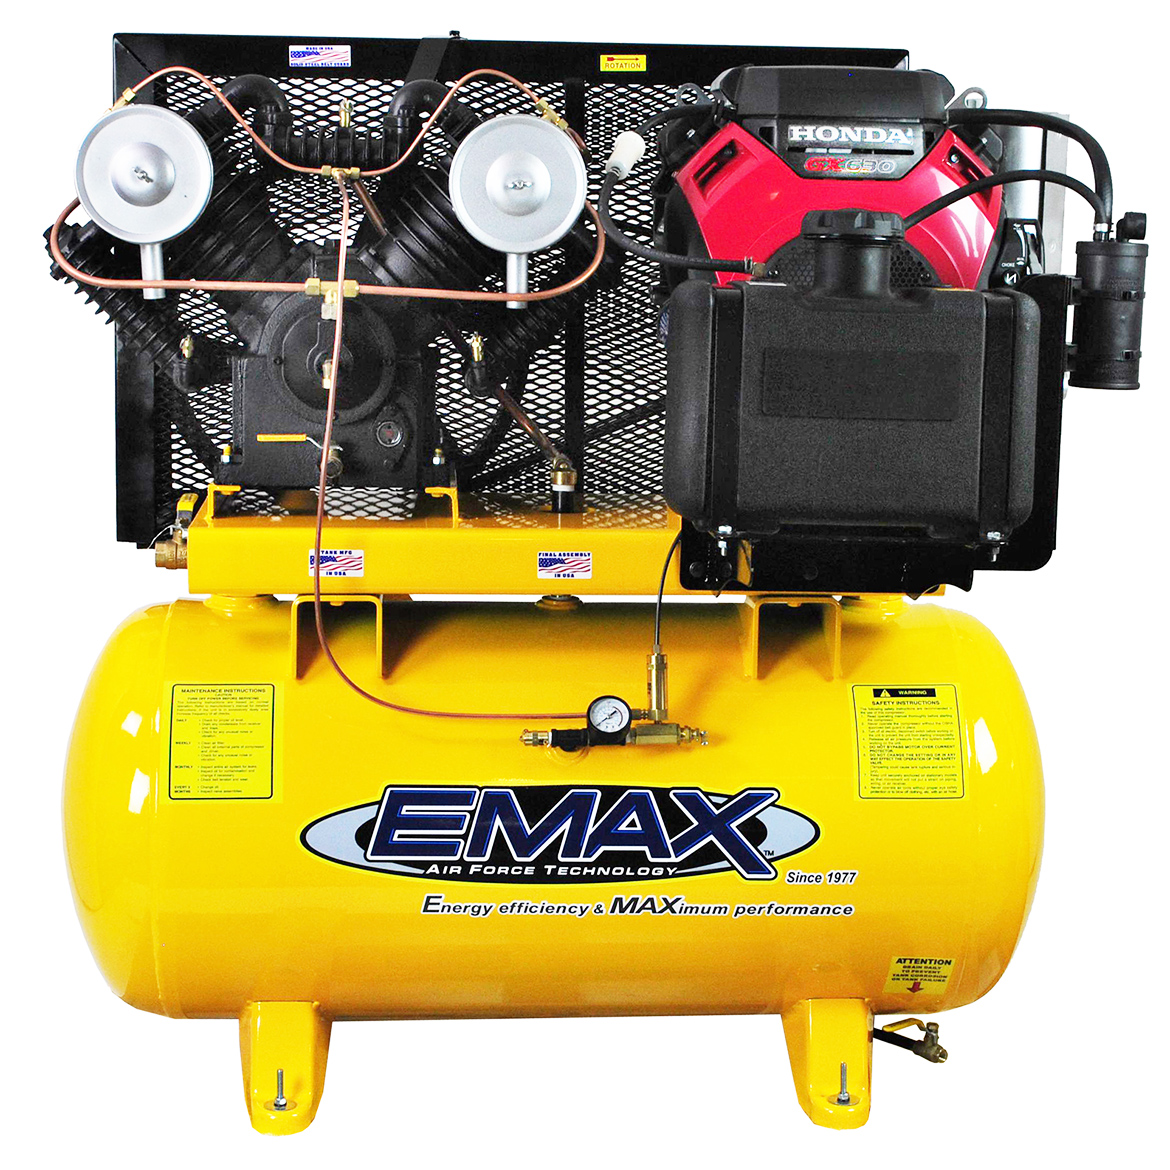 EMAX EGES1830ST 18 HP 30-Gallon 2-Stage Honda Engine Truc...